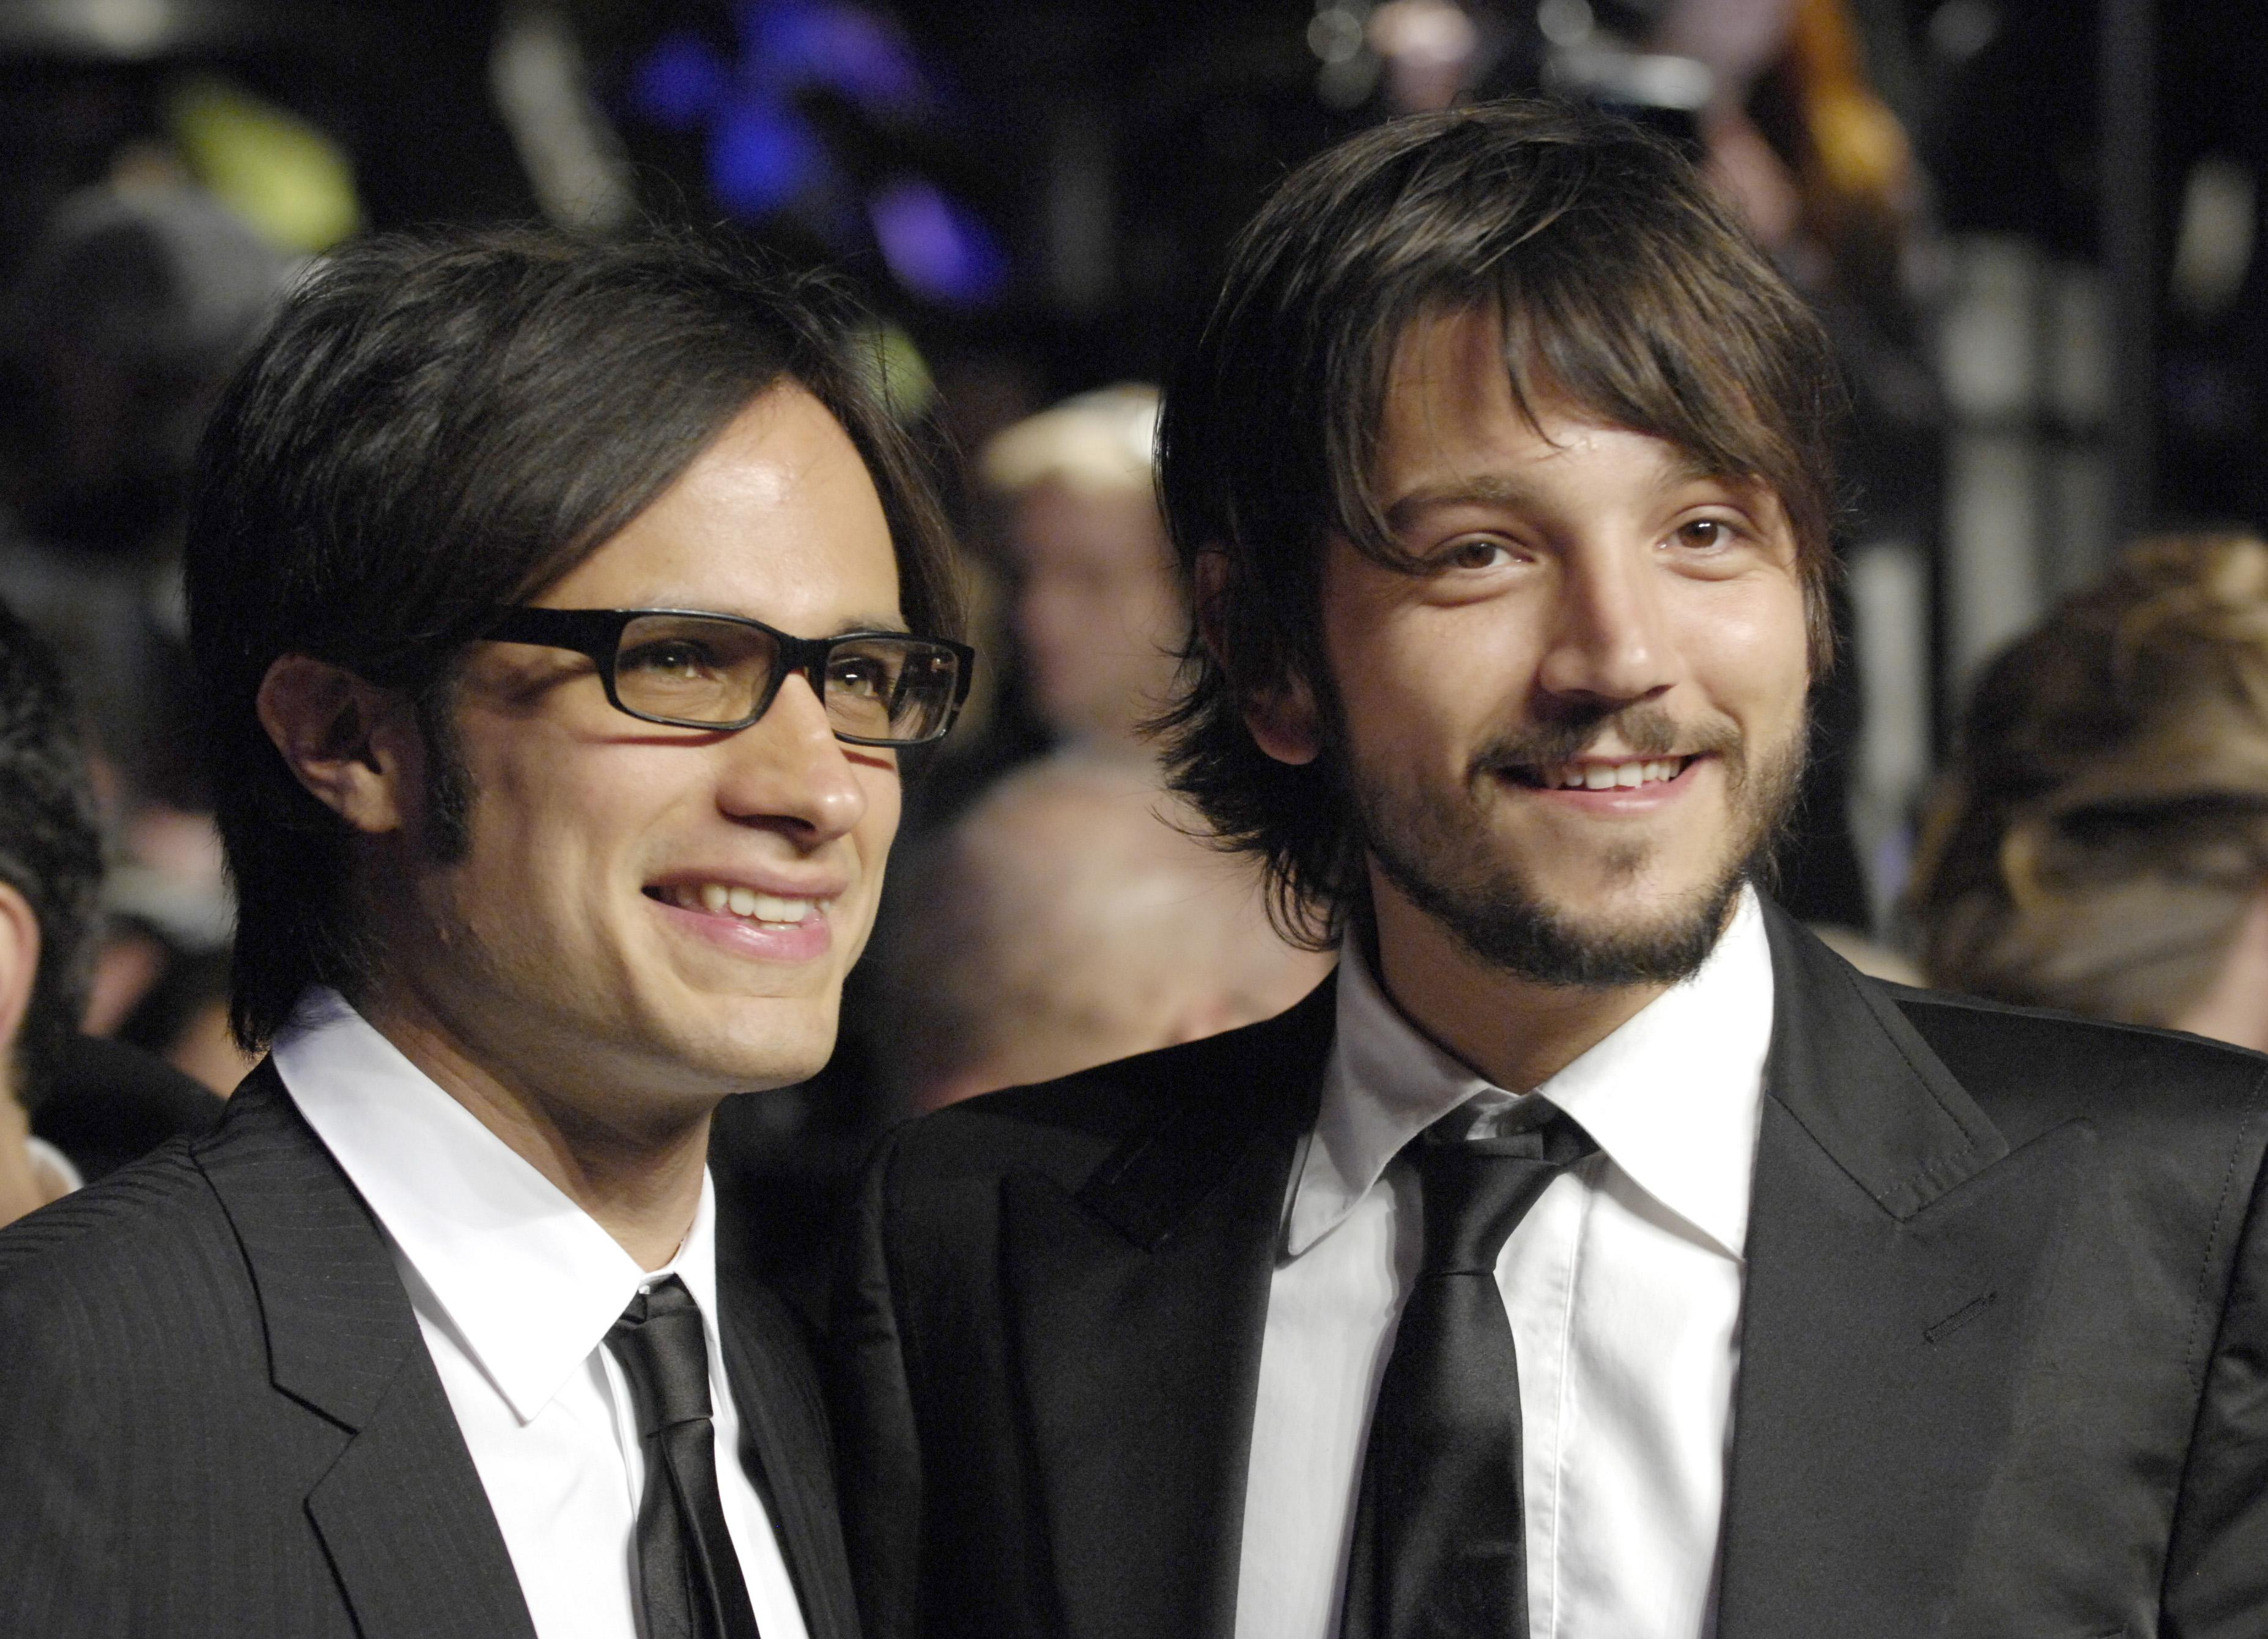 Diego Luna and Gael García Bernal